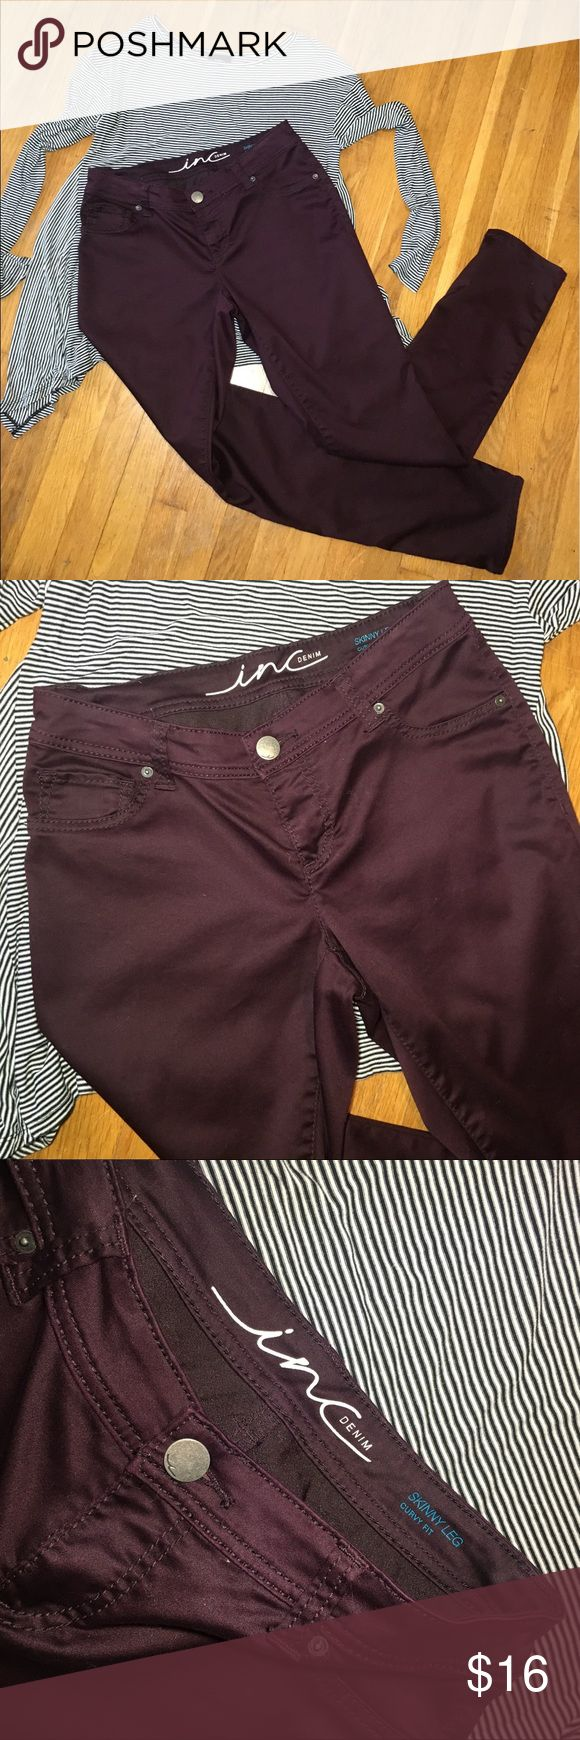 """INC skinny leg curvy fit burgundy pants size 6 INC skinny leg curvy fit burgundy pants size 6. Looser fit through the thighs to fit curvier bodies. 6.5"""" leg opening, 8"""" front rise, 32"""" inseam INC International Concepts Pants Skinny"""